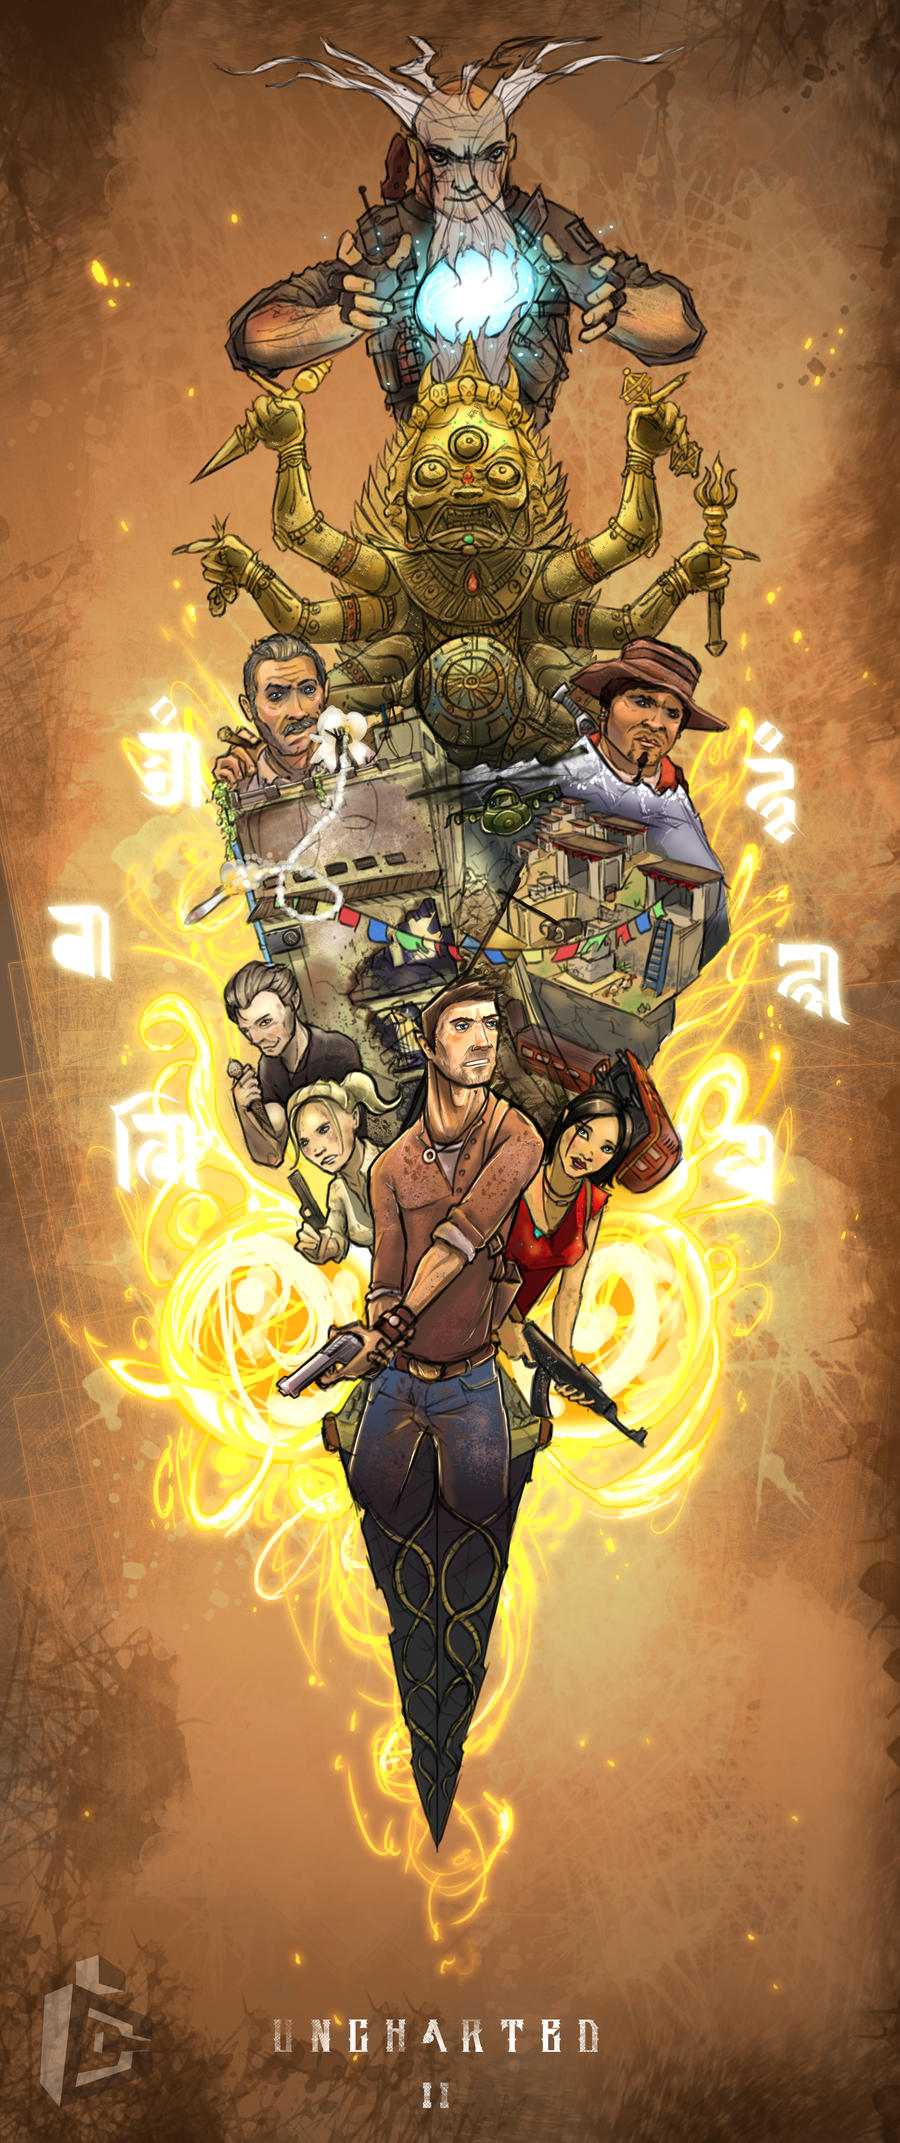 oO Uncharted II Oo by C-CLANCY